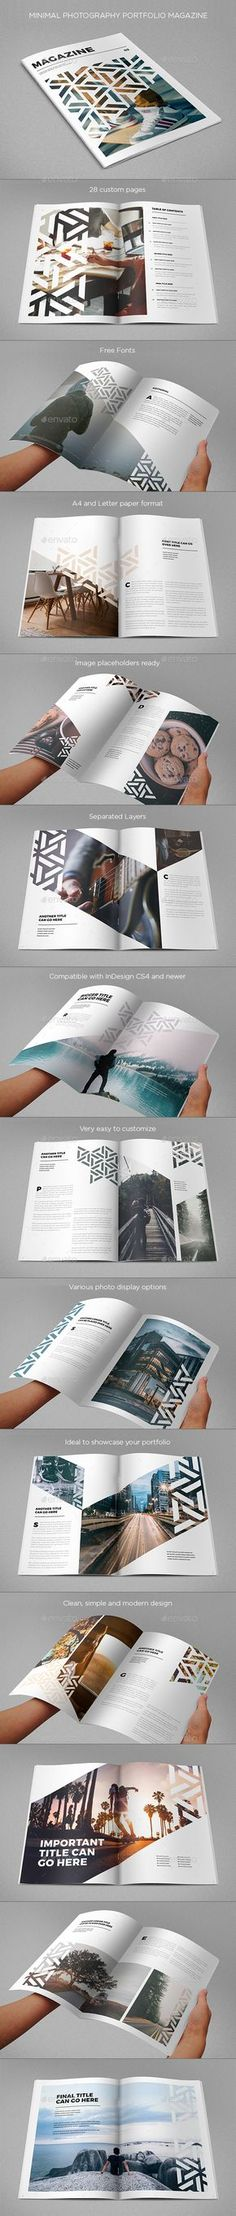 Modern Cool Pattern Magazine — InDesign INDD #simple #pattern • Available here → https://graphicriver.net/item/modern-cool-pattern-magazine/17263863?ref=pxcr